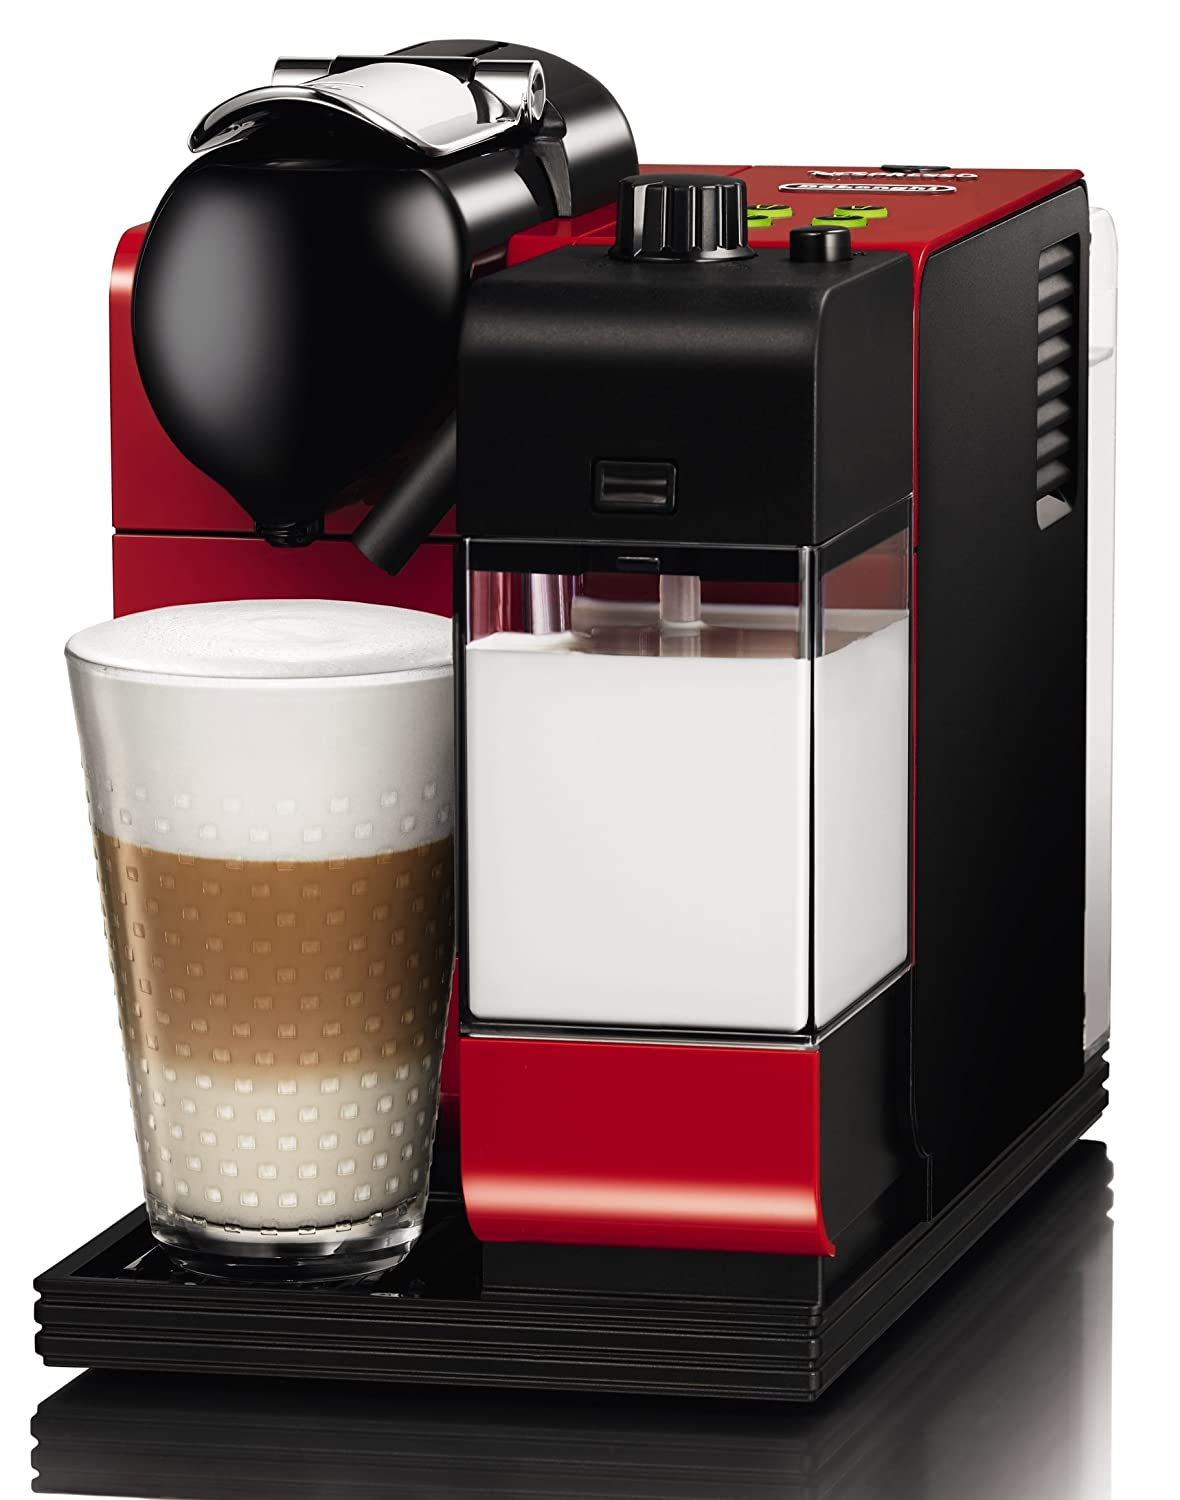 delonghi en520 r nespresso lattissima plus coffee maker. Black Bedroom Furniture Sets. Home Design Ideas